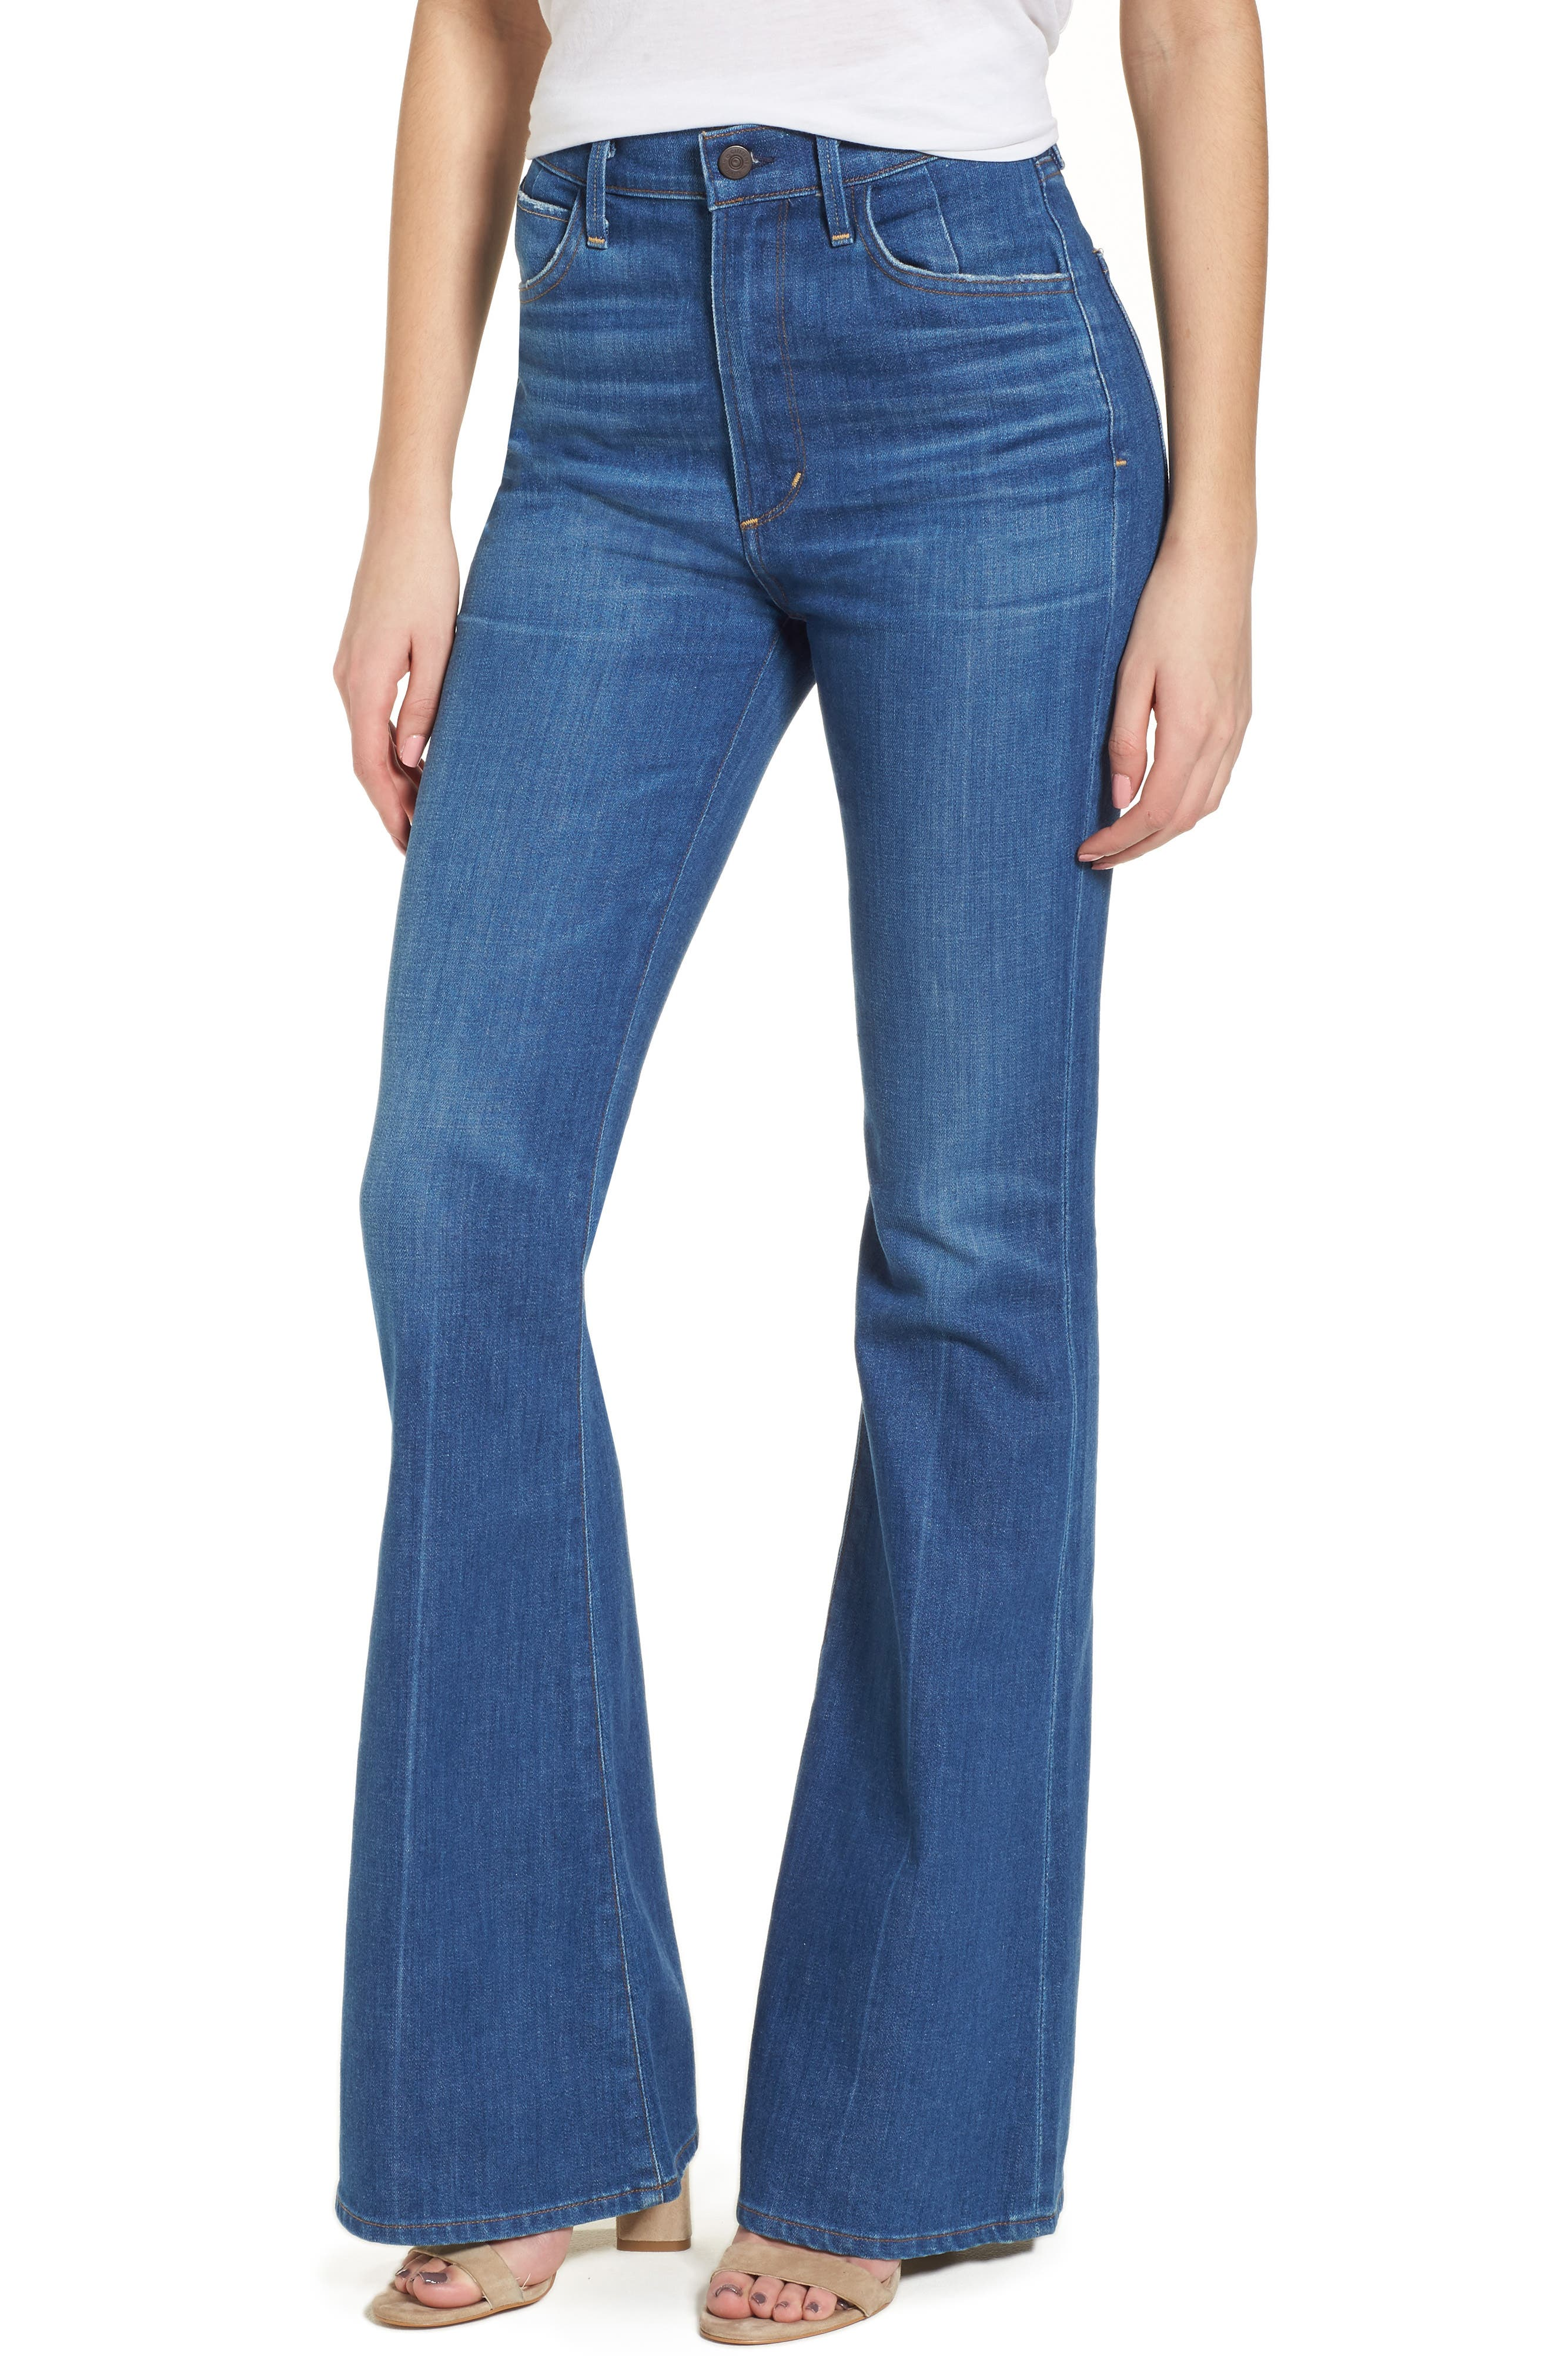 Main Image - Citizens of Humanity Cherie High Waist Bell Jeans (Frampton)